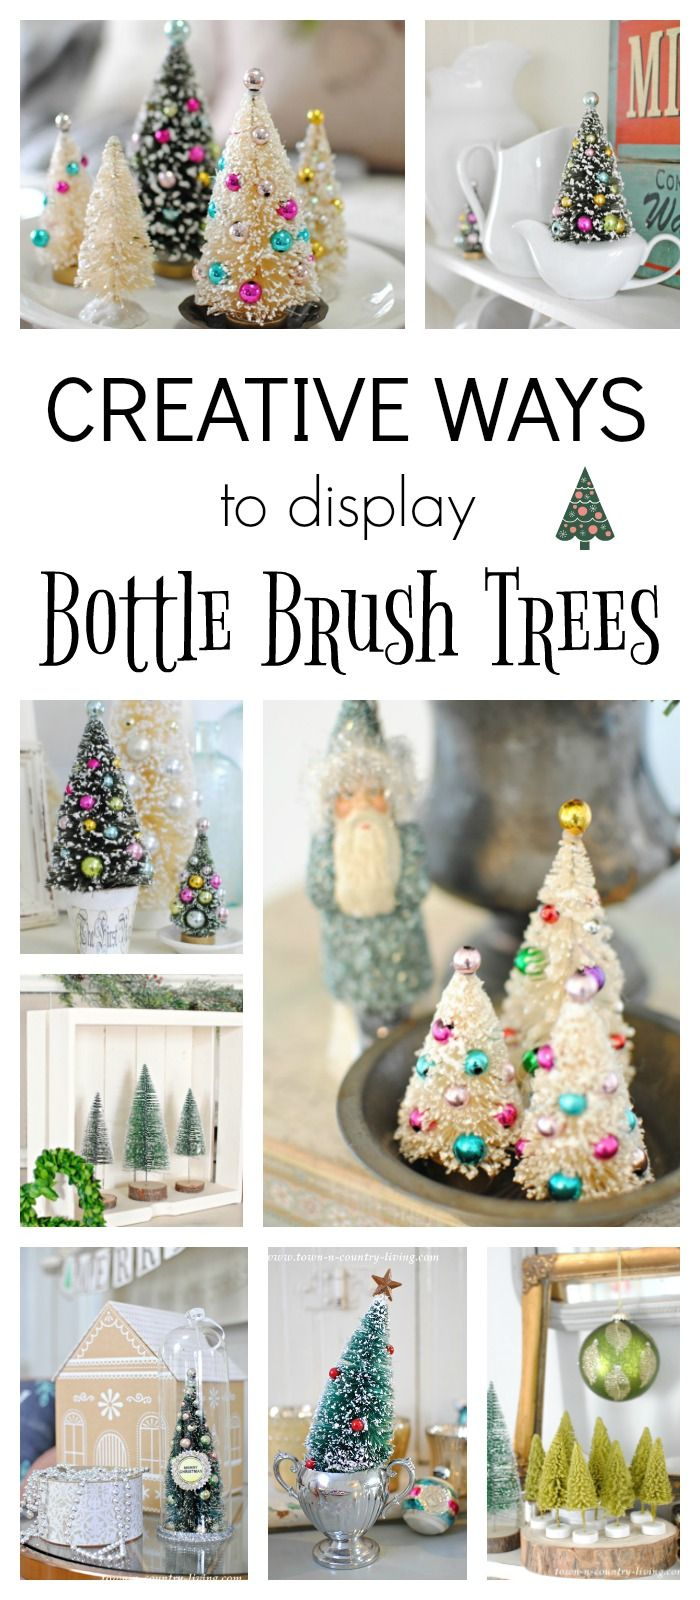 Bottle Brush Trees Creative Ways To Display Town Country Living Bottle Brush Christmas Trees Bottle Brush Trees Mini Christmas Tree